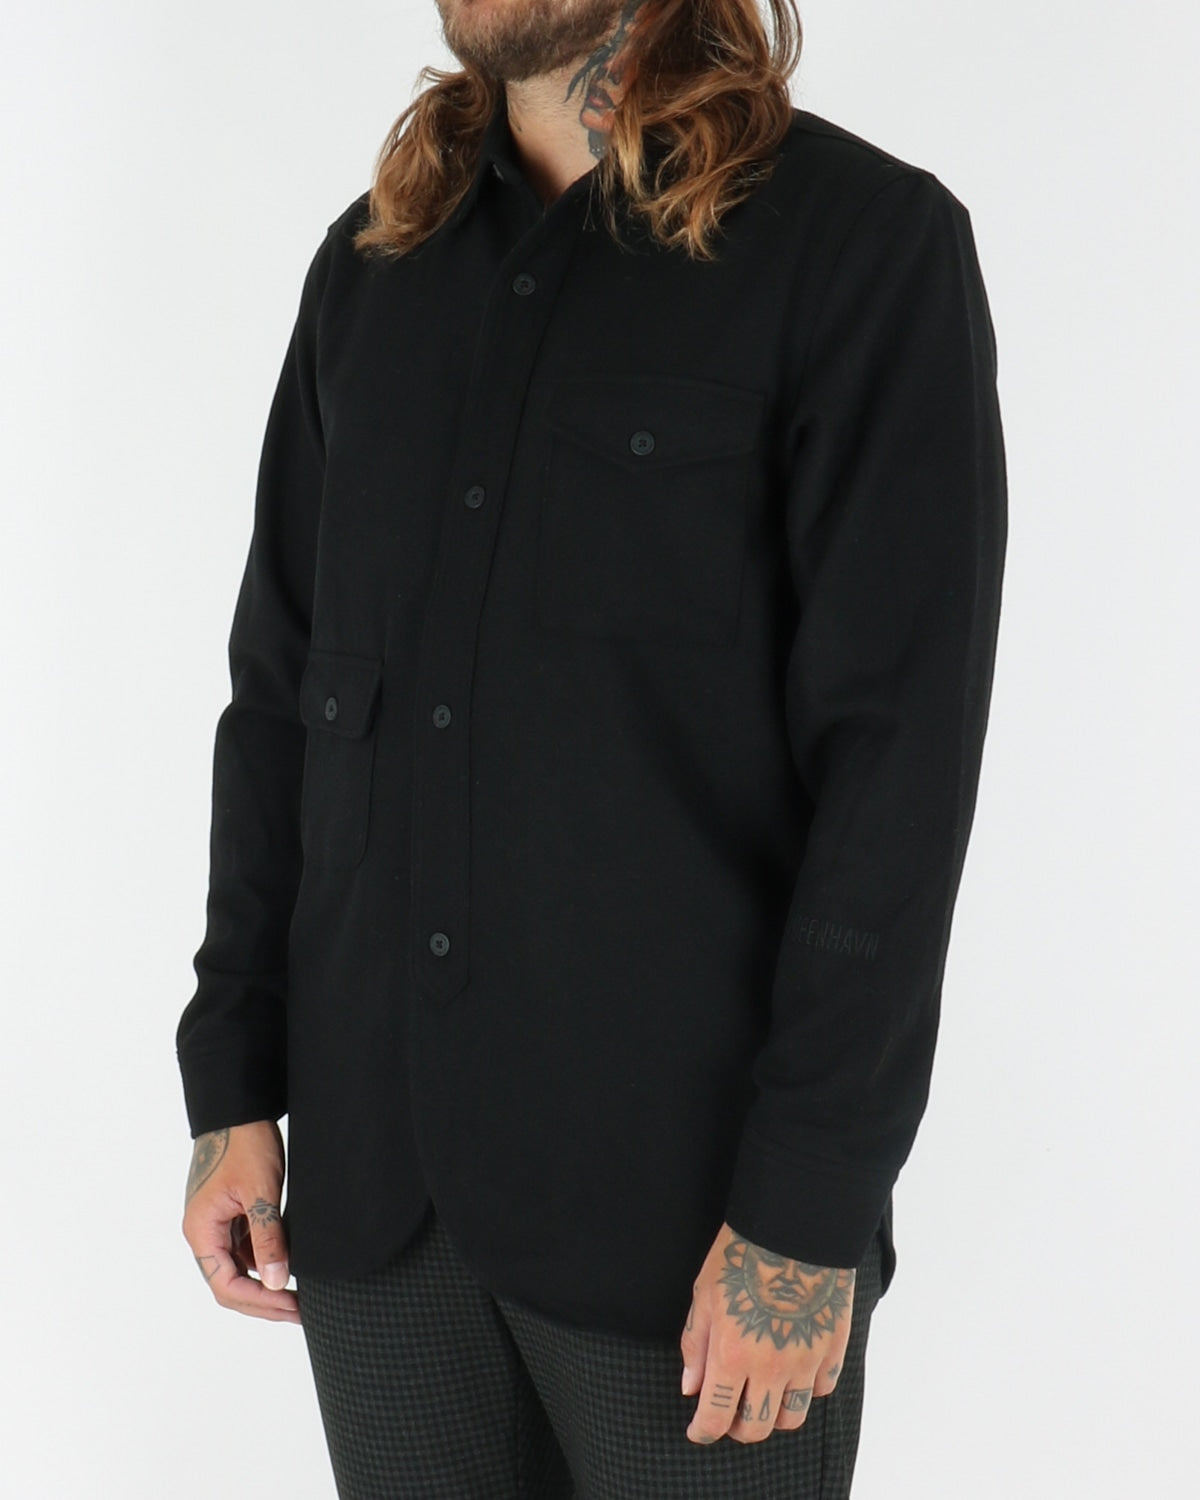 han kjobenhavn_army shirt_black wool_view_2_4